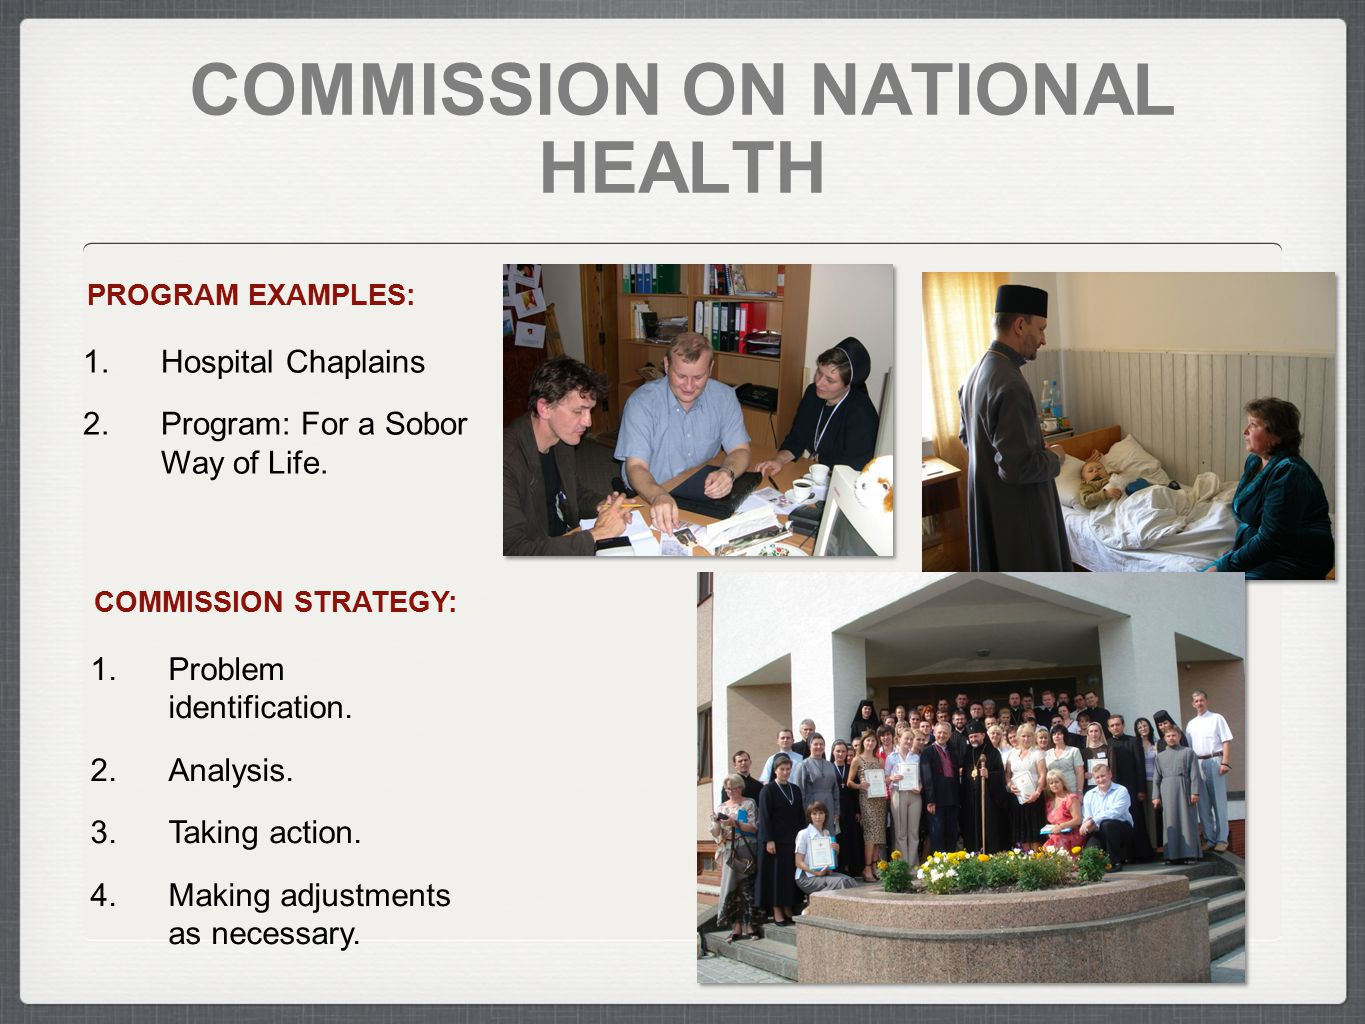 COMMISSION ON NATIONAL HEALTH COMMISSION STRATEGY: 1.Problem identification. 2.Analysis. 3.Taking action. 4.Making adjustments as necessary. PROGRAM E